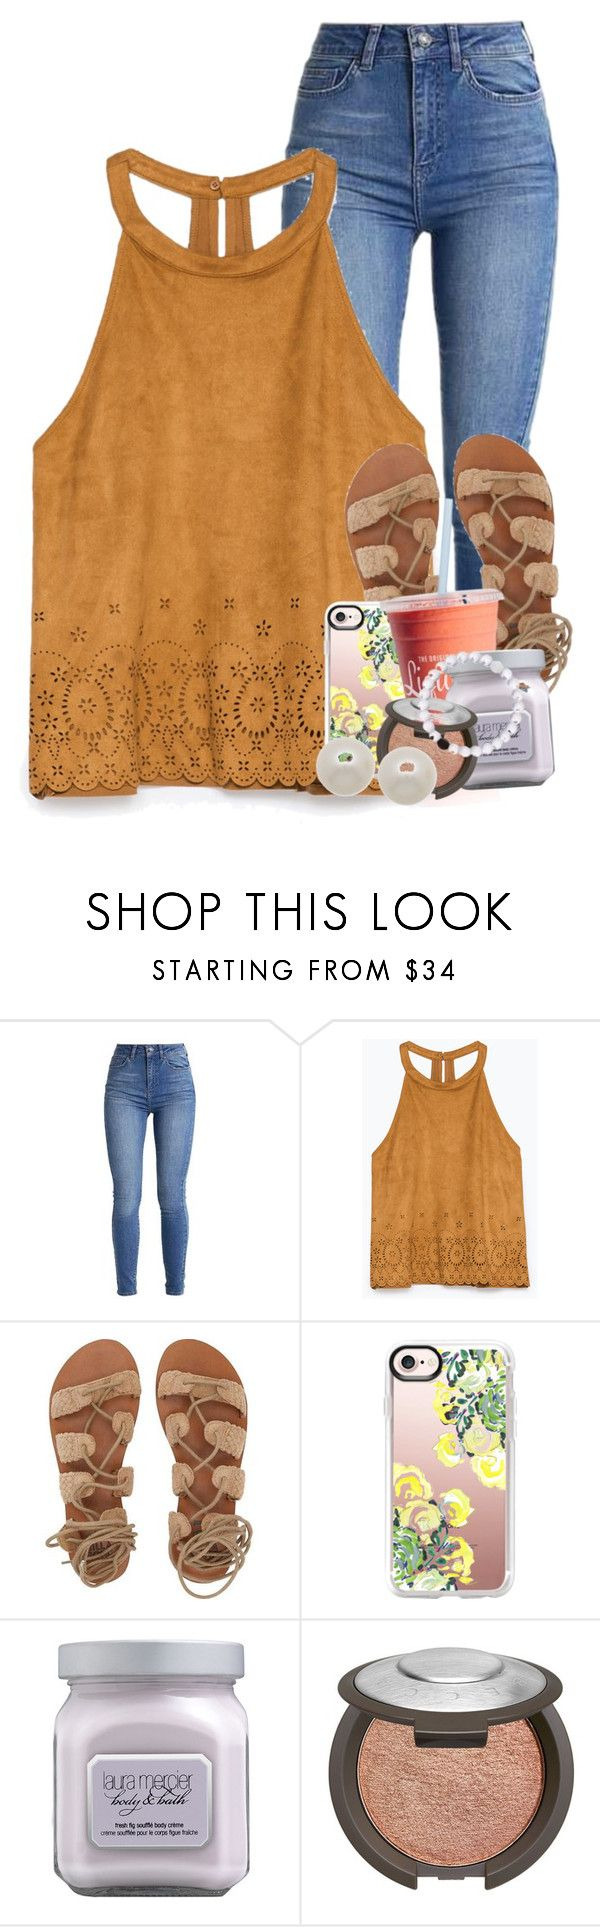 """THANK YOU FOR 100 ❤️"" by emilyandella ❤ liked on Polyvore featuring Zara, Billabong, Casetify, Laura Mercier, Becca and Honora"